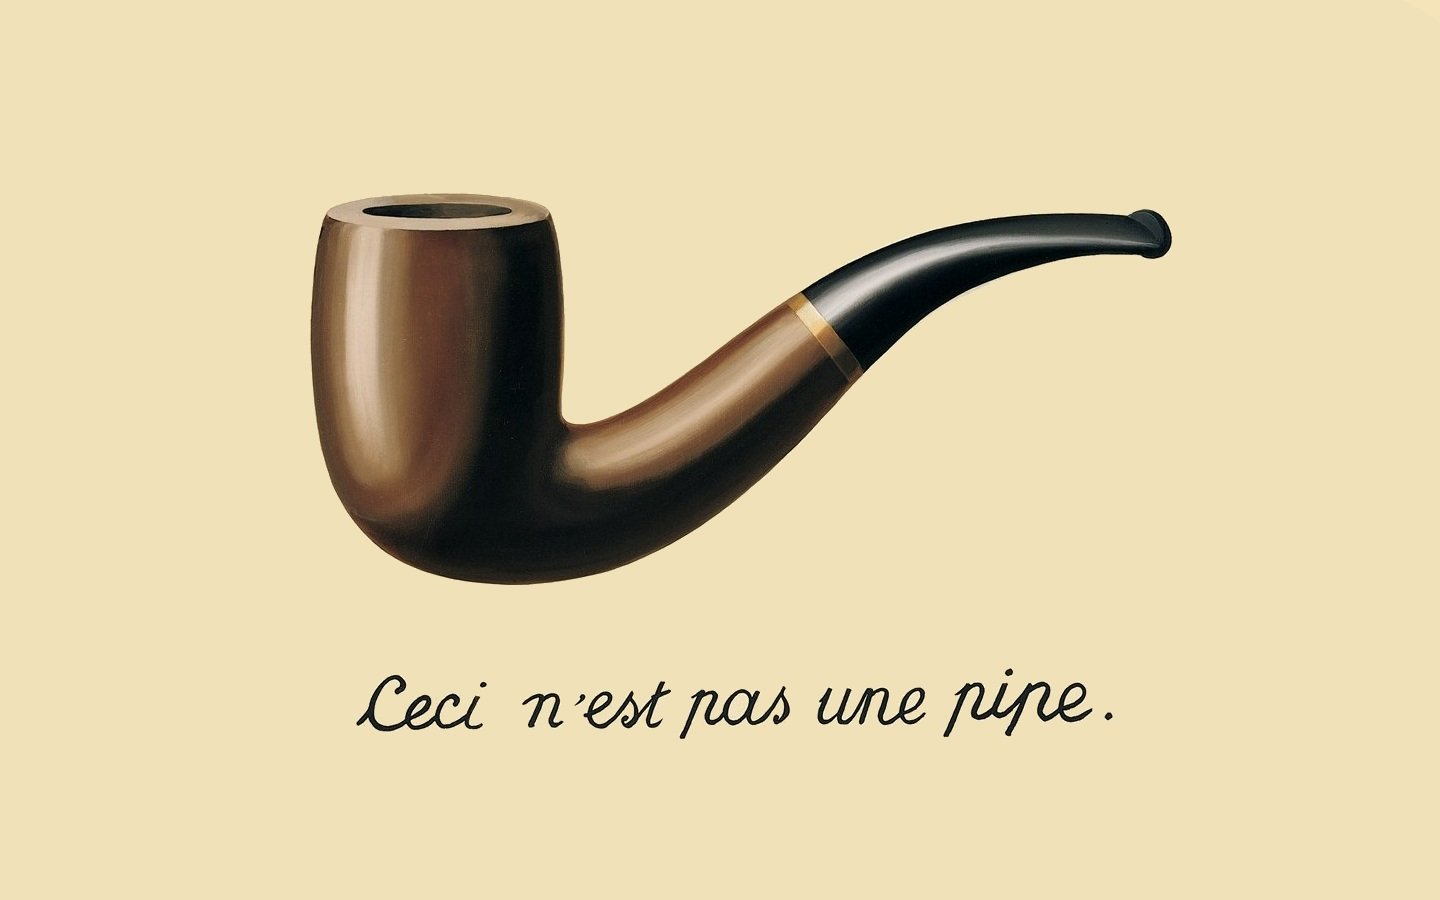 Rene Magritte, The Treachery of Images